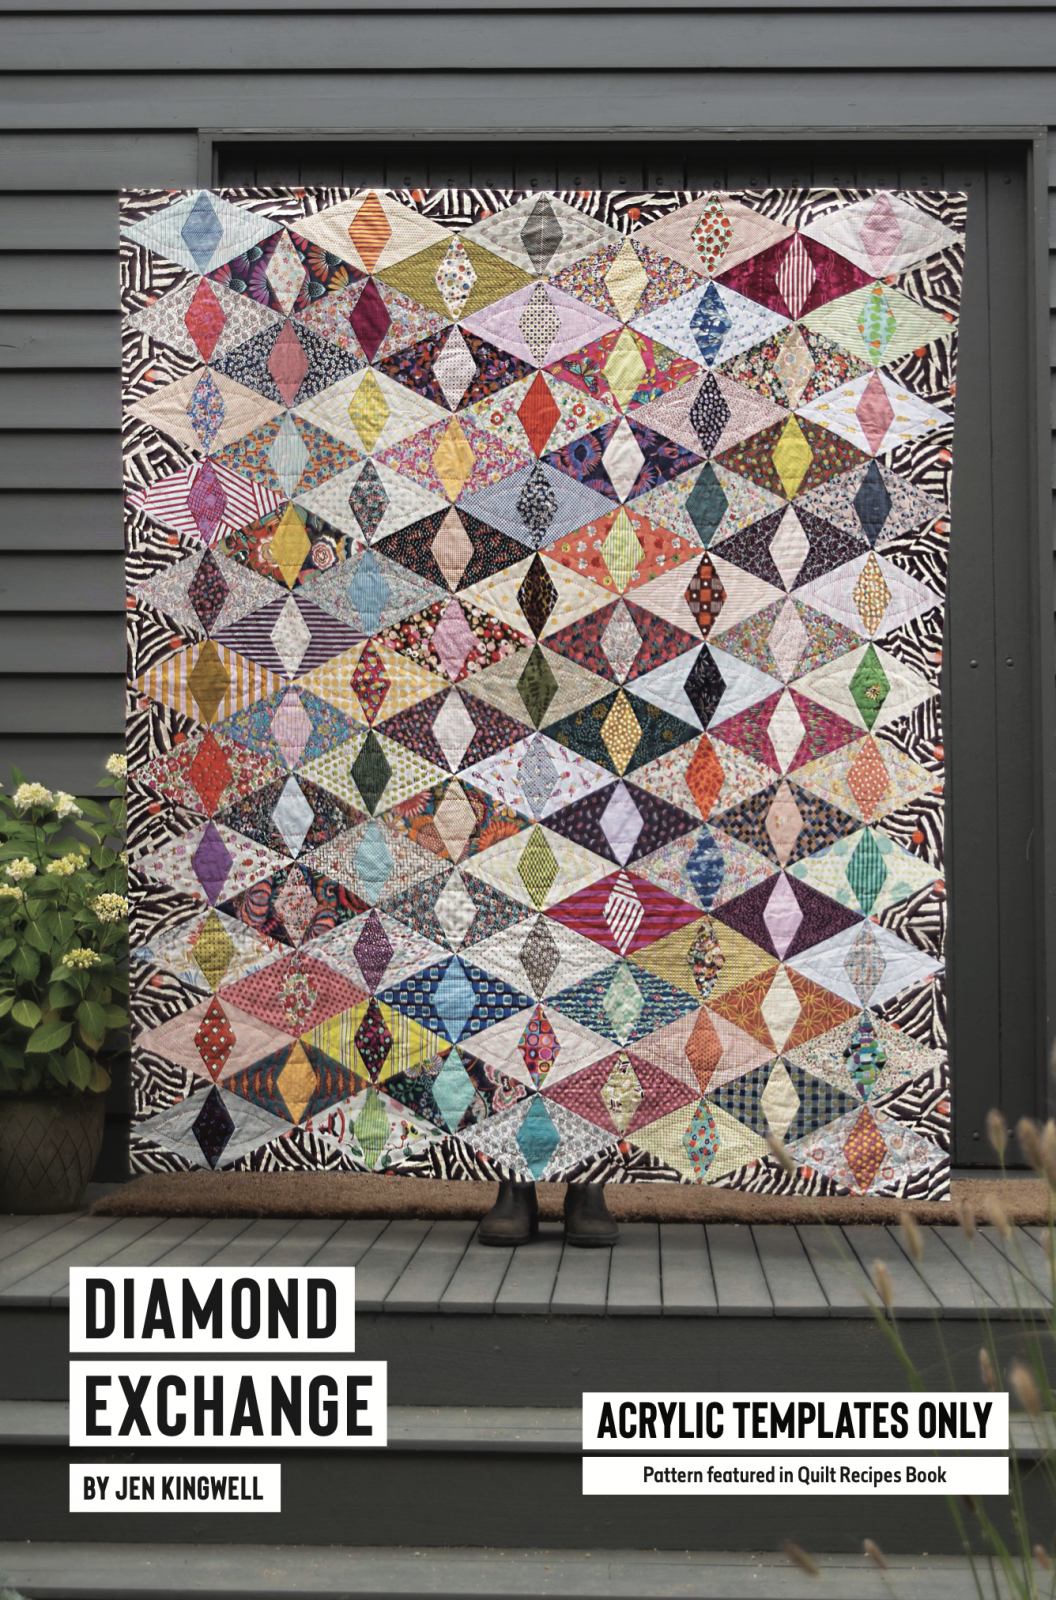 Diamond Exchange Acrylic Template Only Set from Quilt Recipes by Jen Kingwell